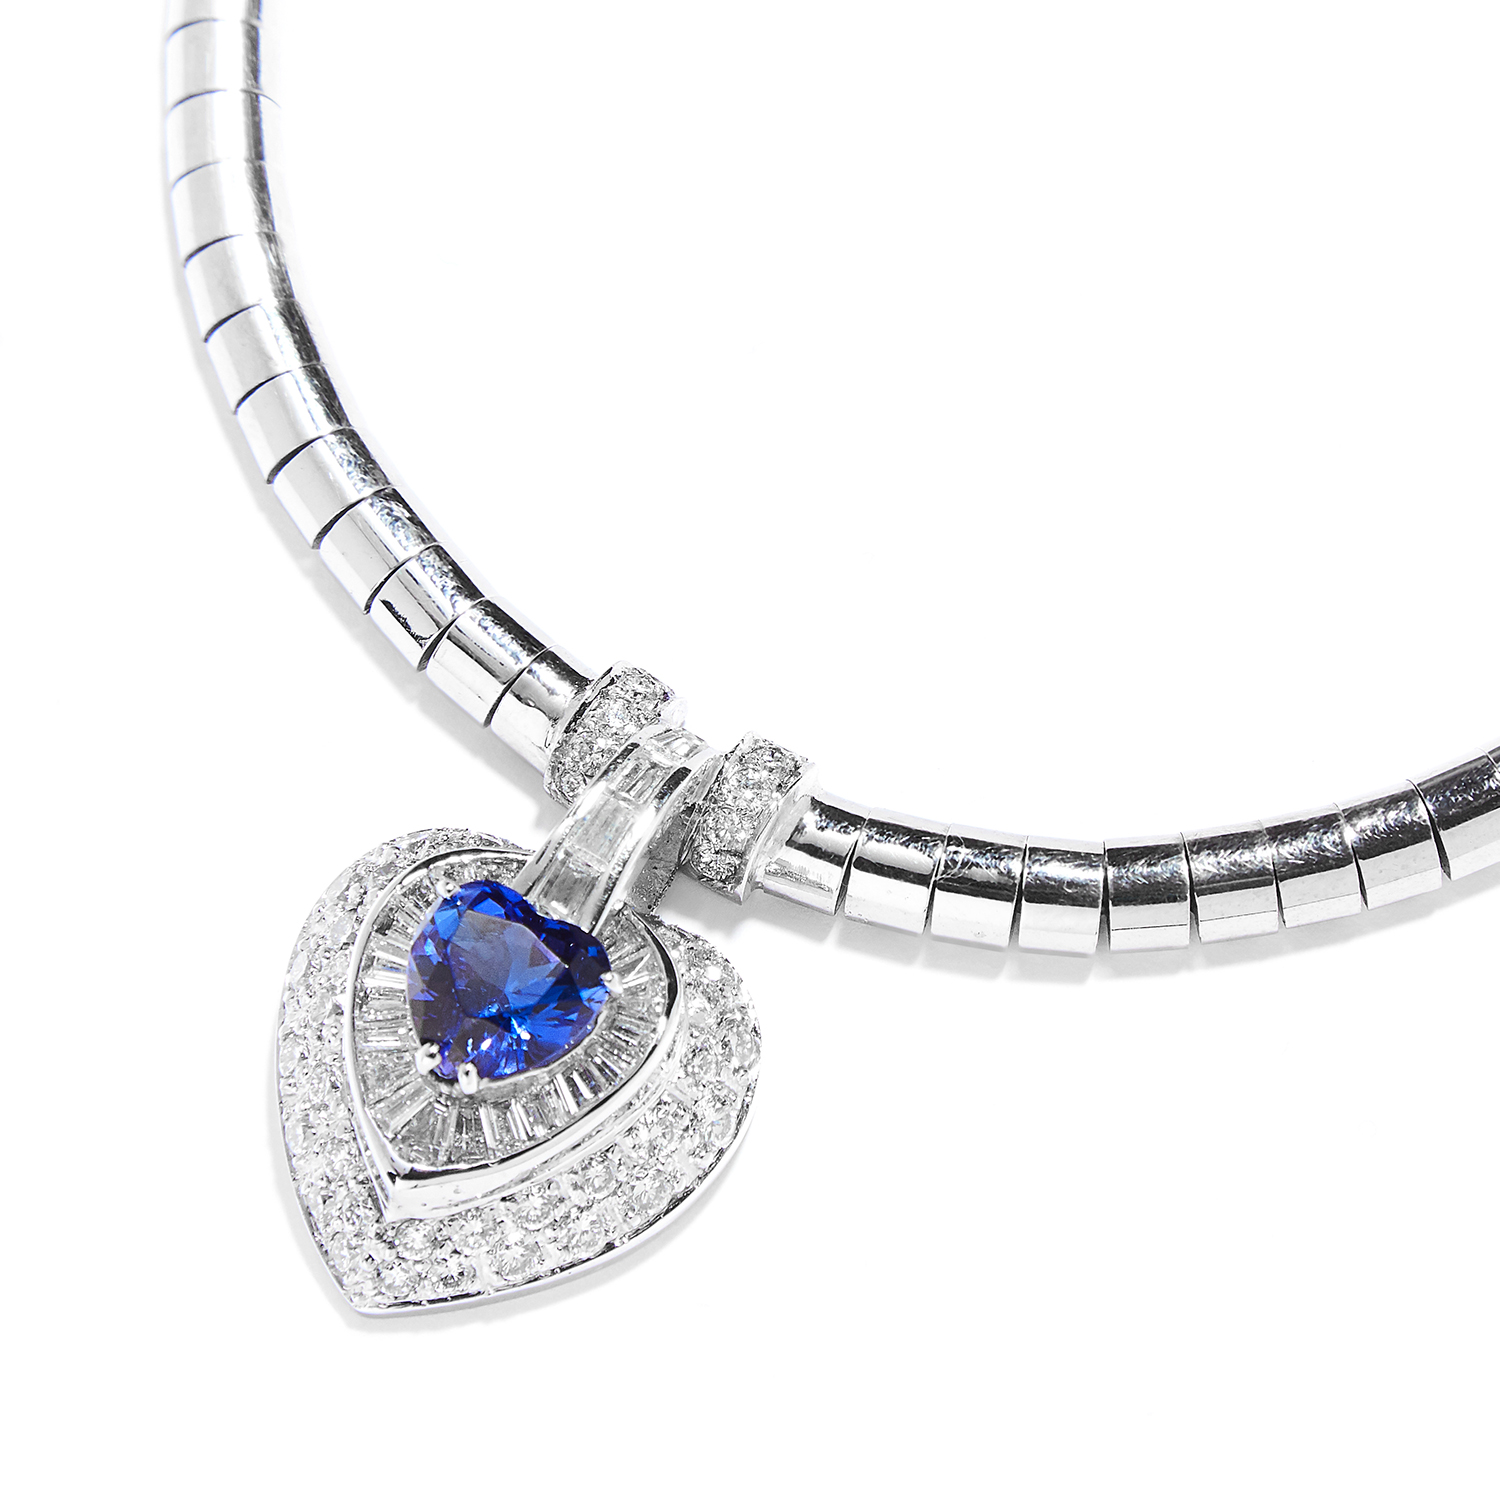 Los 18 - TANZANITE AND DIAMOND PENDANT NECKLACE in 18ct white gold, the fancy link chain suspending a heart